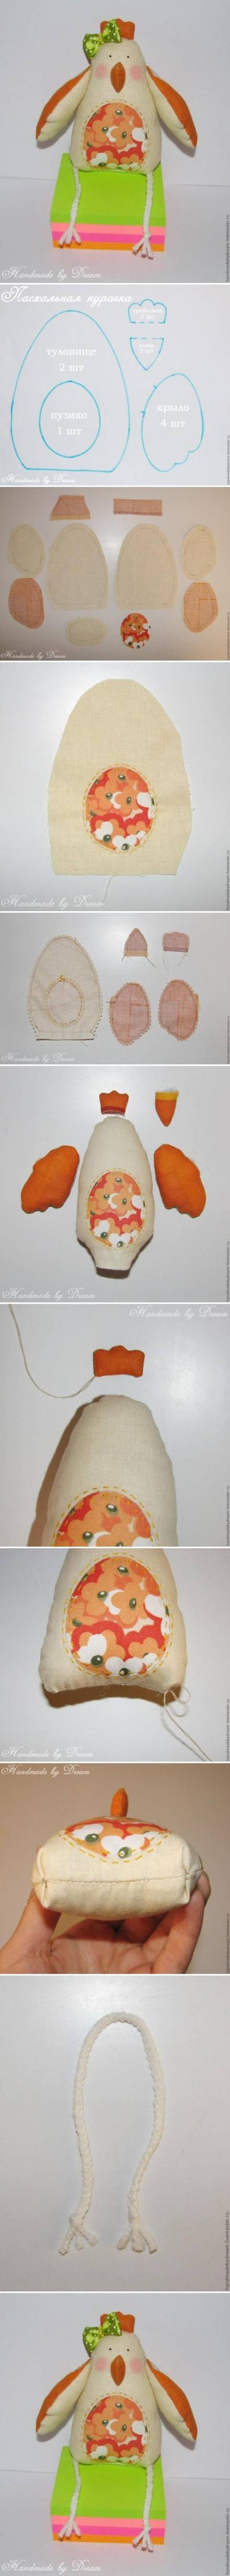 How to make Small Fabric Hen step by step DIY tutorial instructions